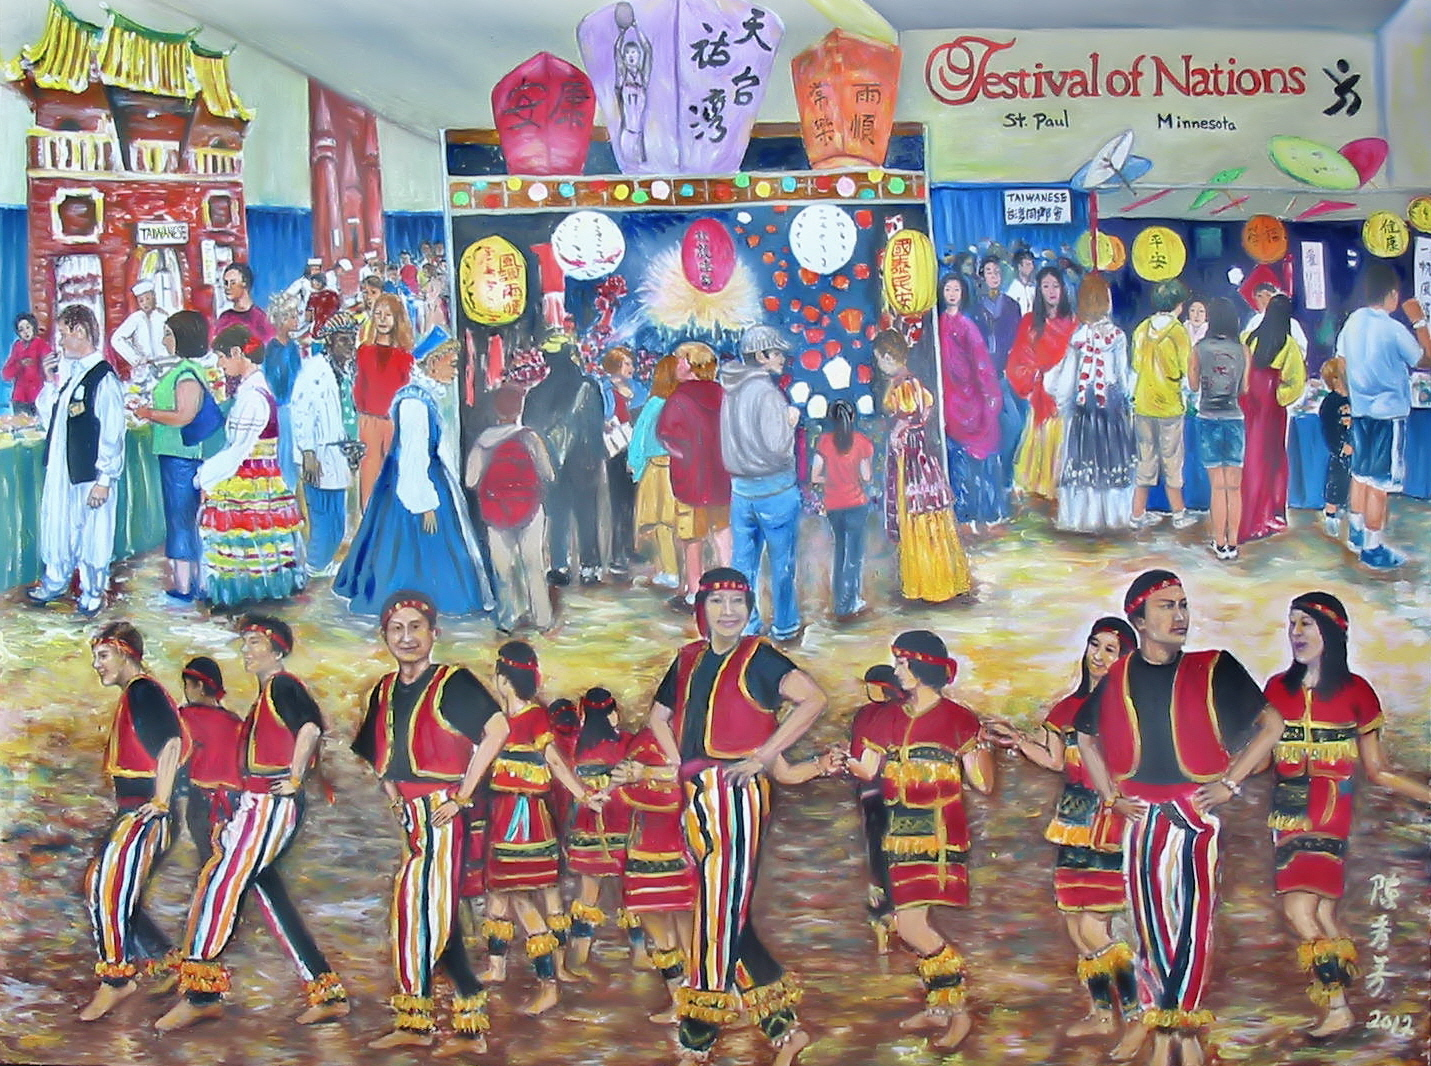 2. Festival of Nations – Minnesota 萬國節-明尼蘇達